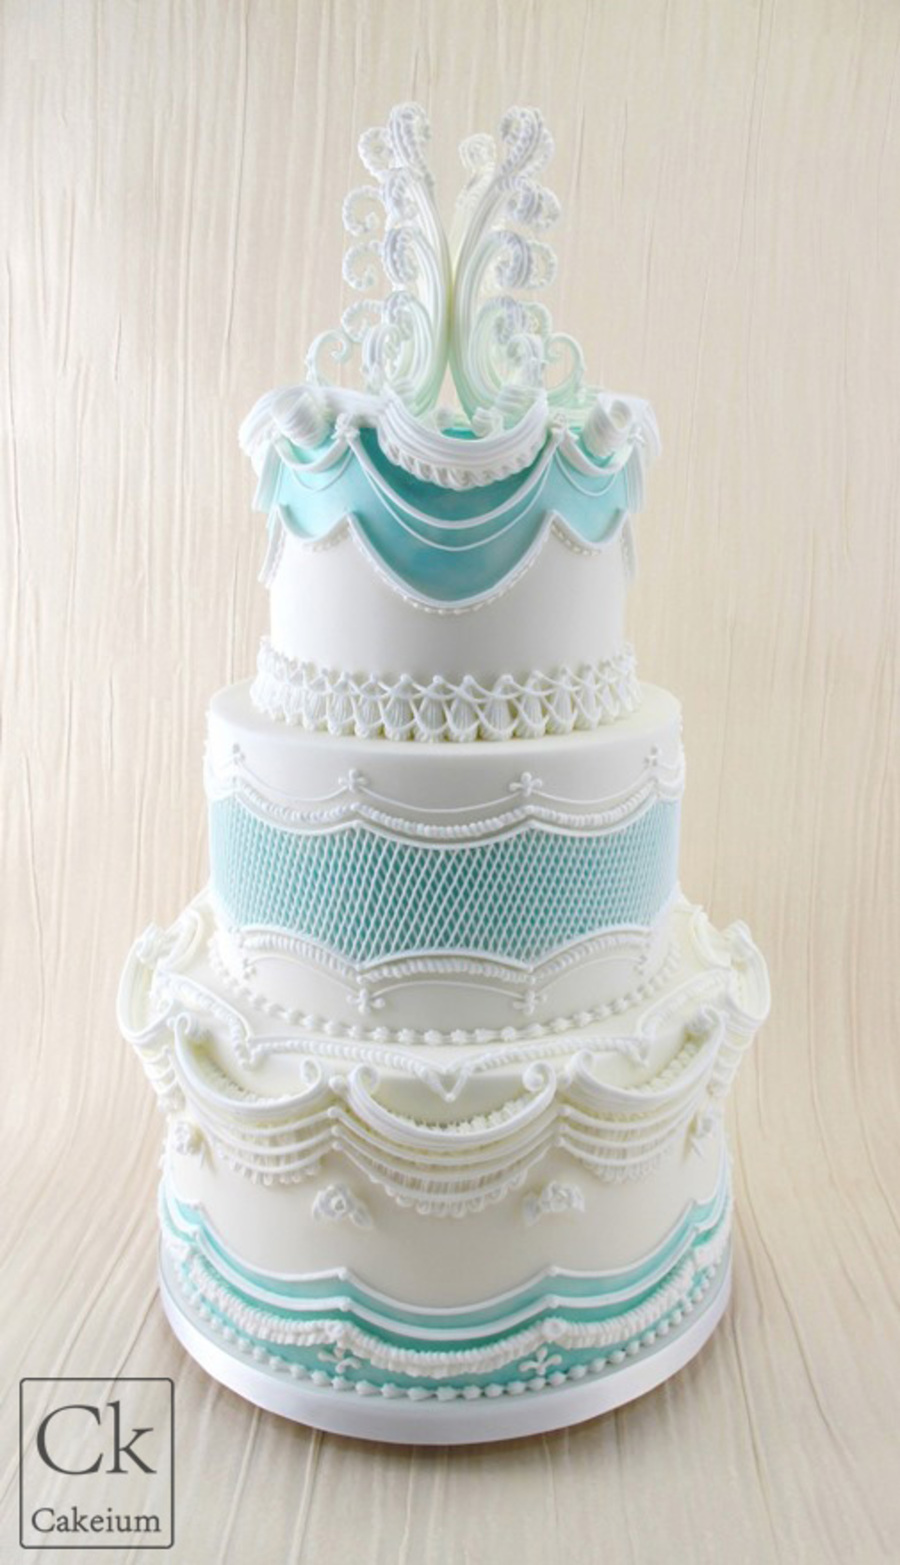 Lambeth Inspired Wedding Cake - CakeCentral.com